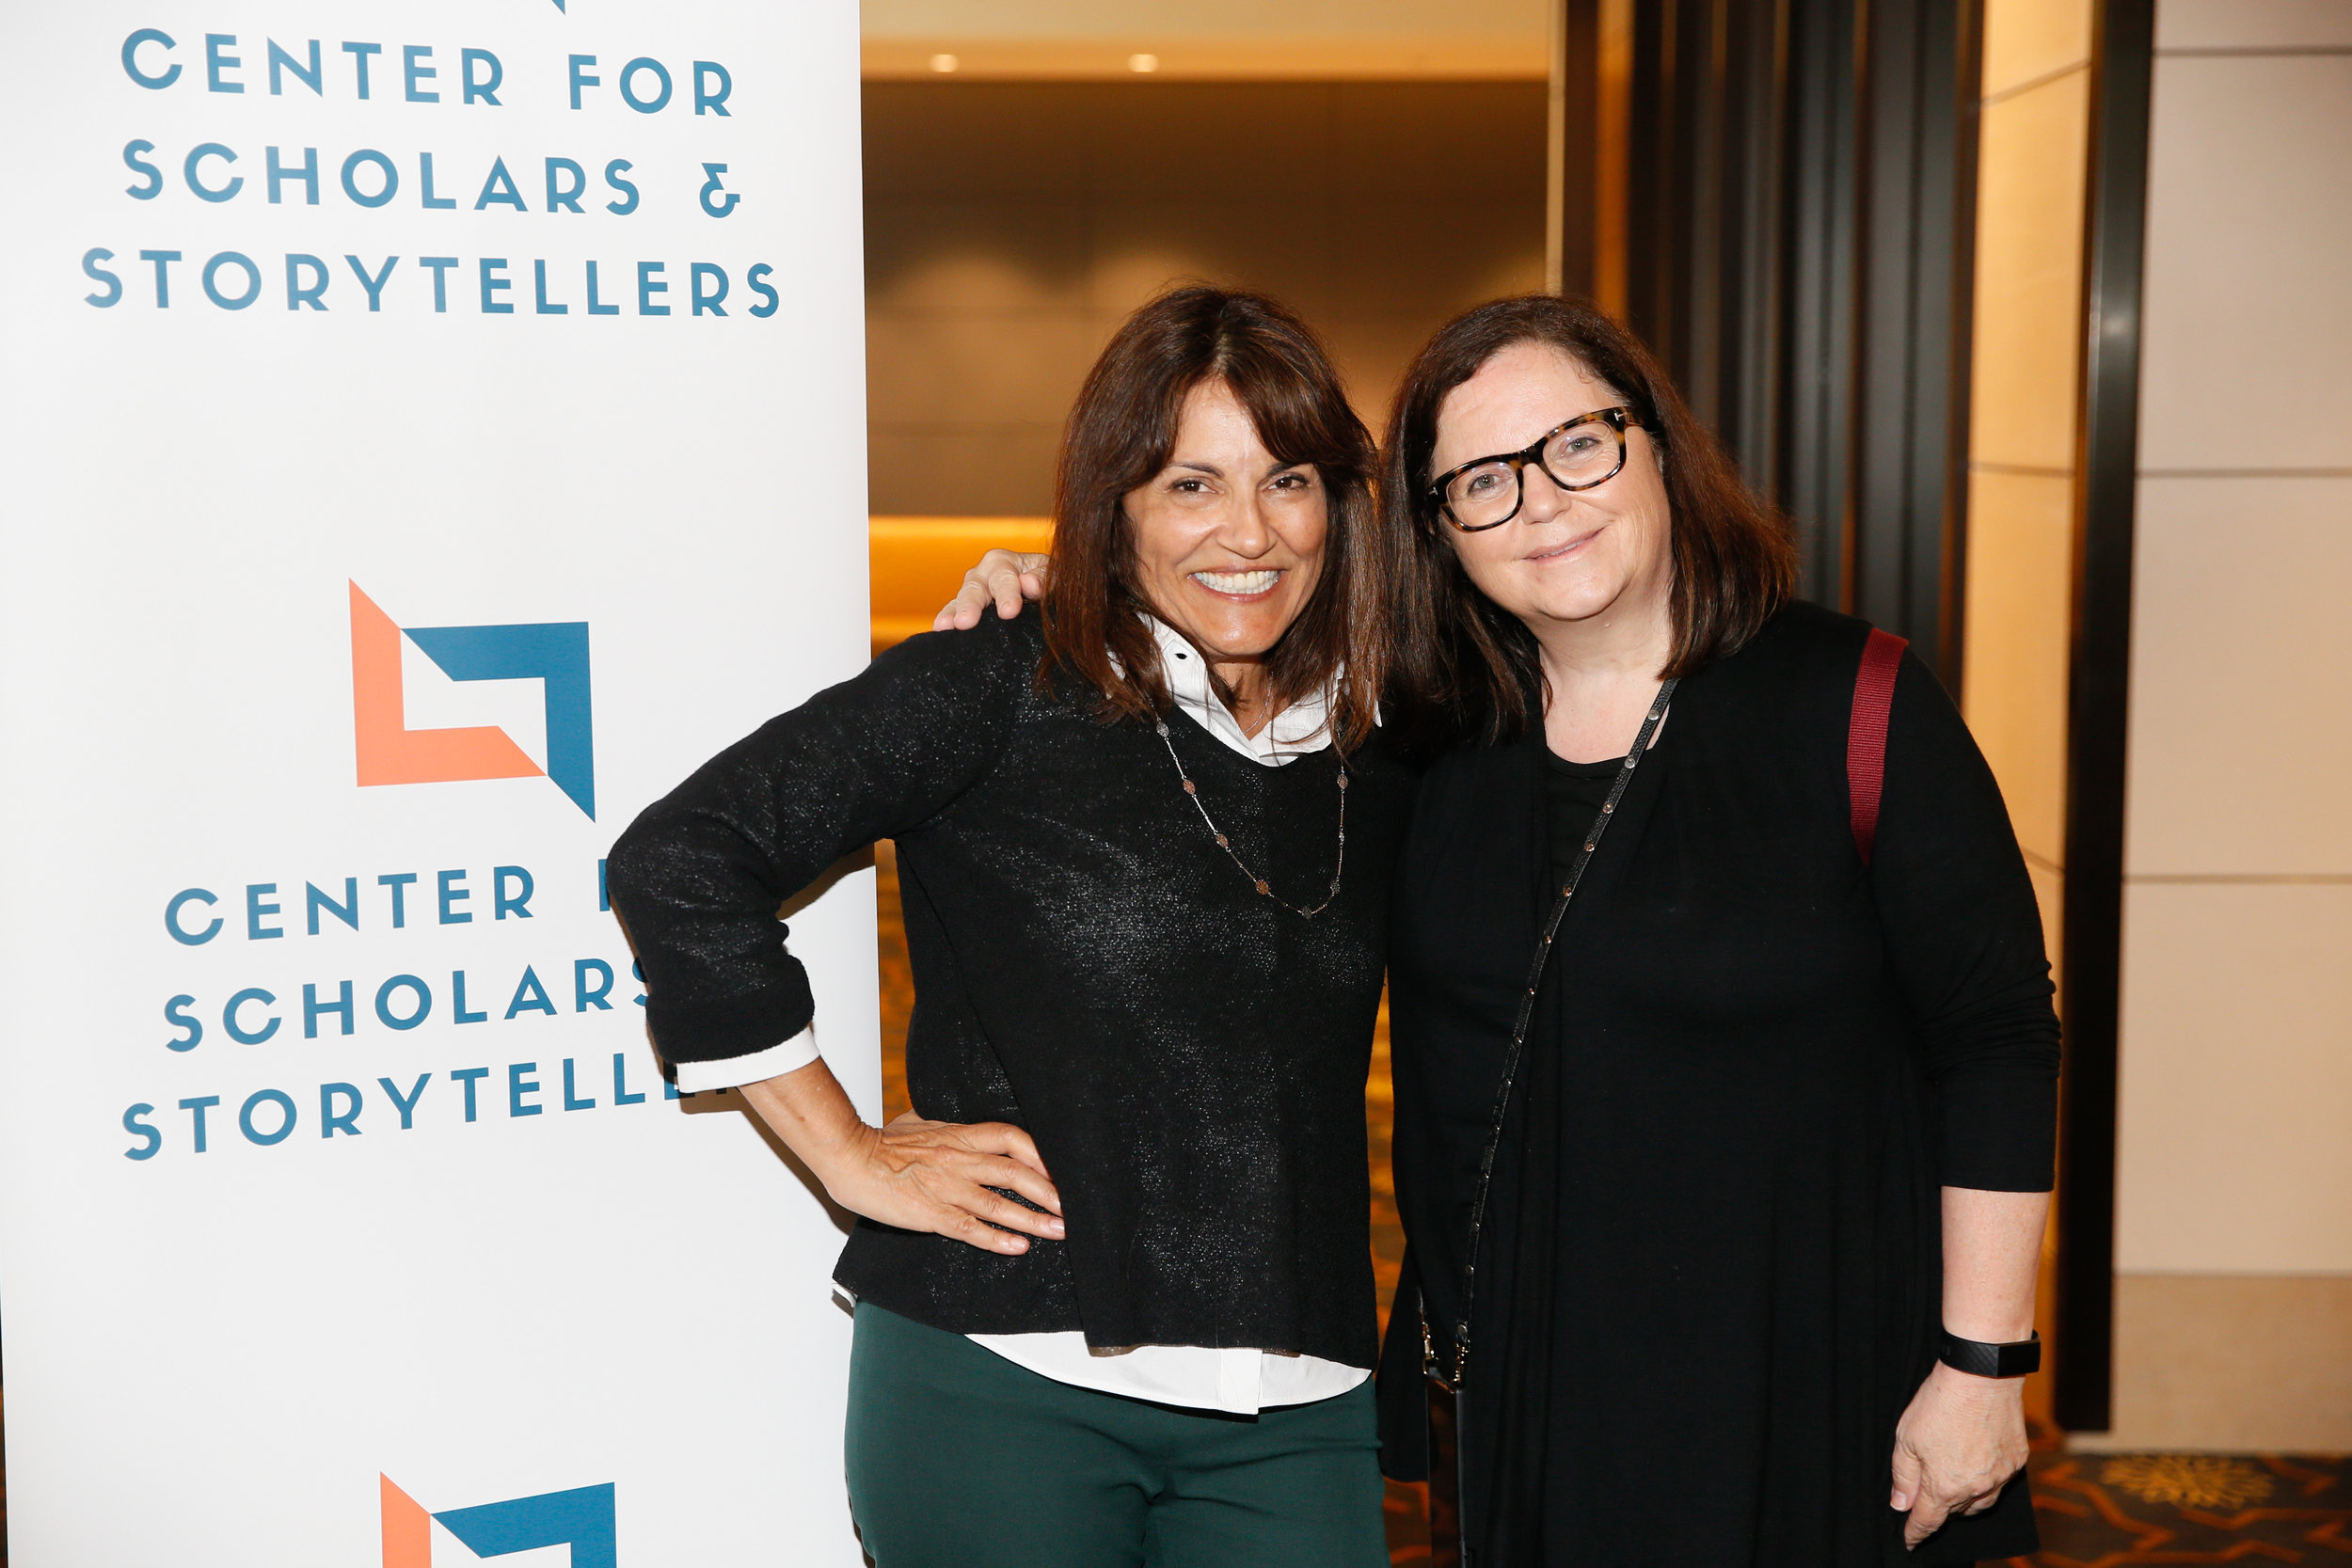 CSS Founder and Executive Director Dr. Yalda T. Uhls (left) with Senior Vice President of Strategic Alliances at Participant Media Lynn Hirshfield (right).